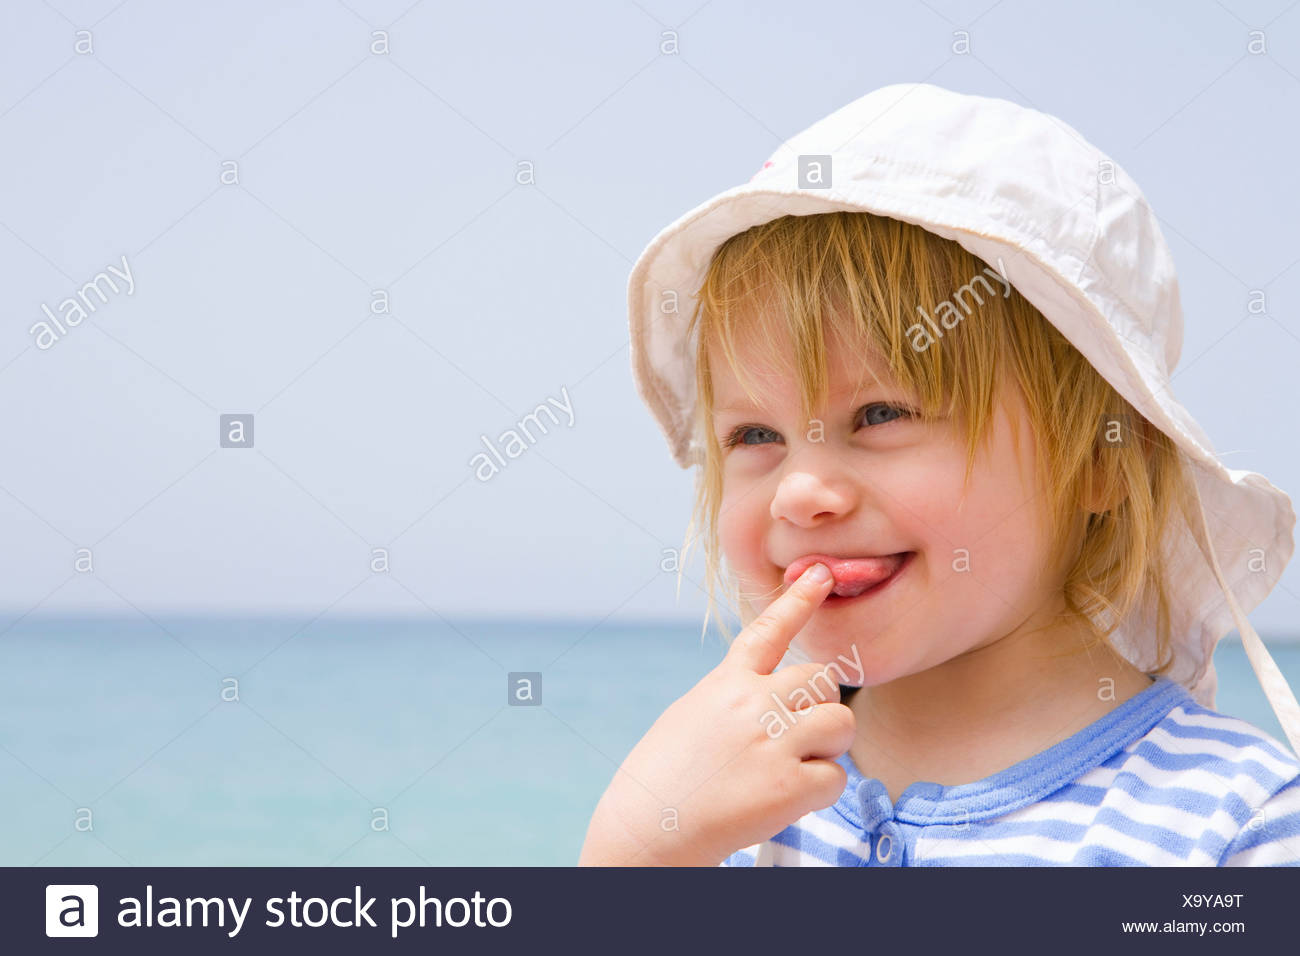 Portrait of baby at beach with tongue out - Stock Image